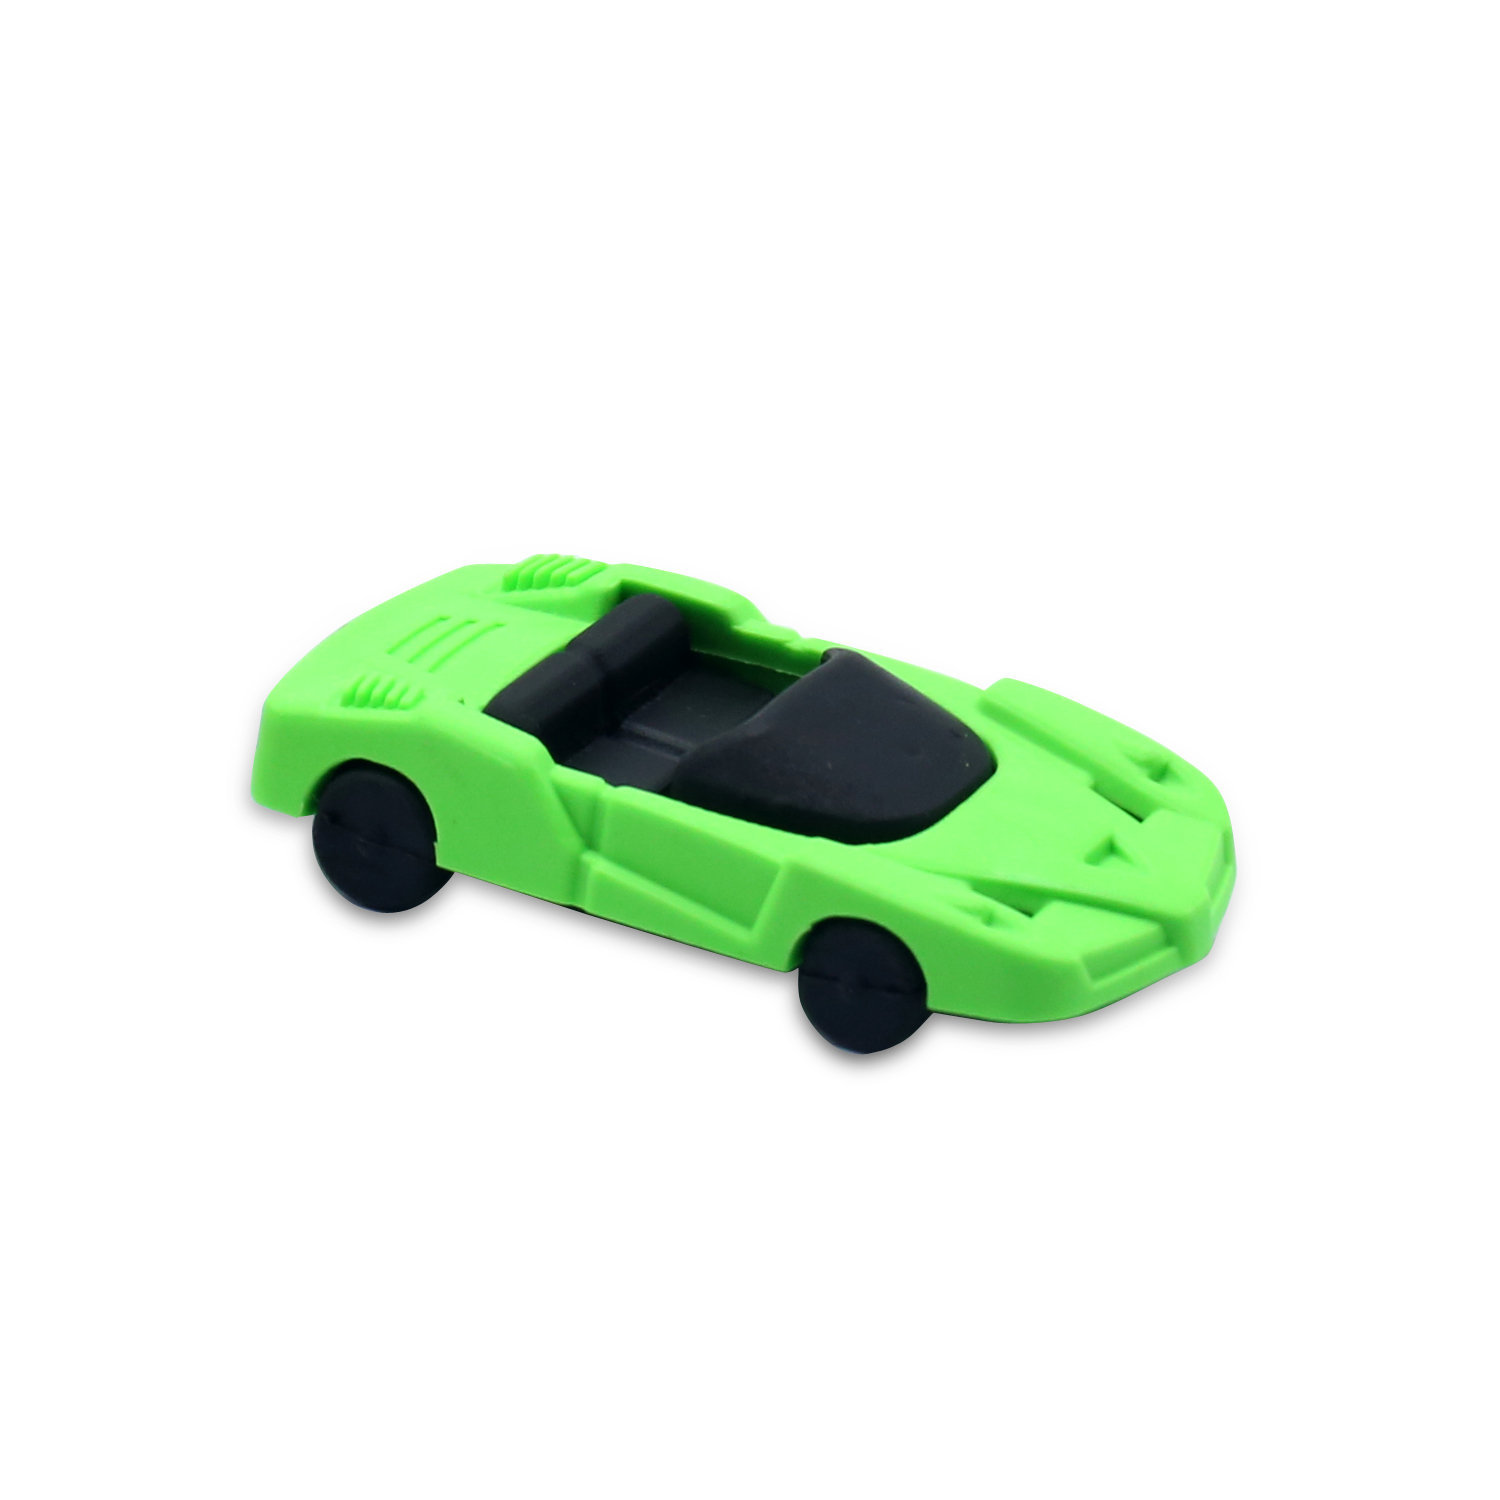 Loufor Car Eraser 5262 Green